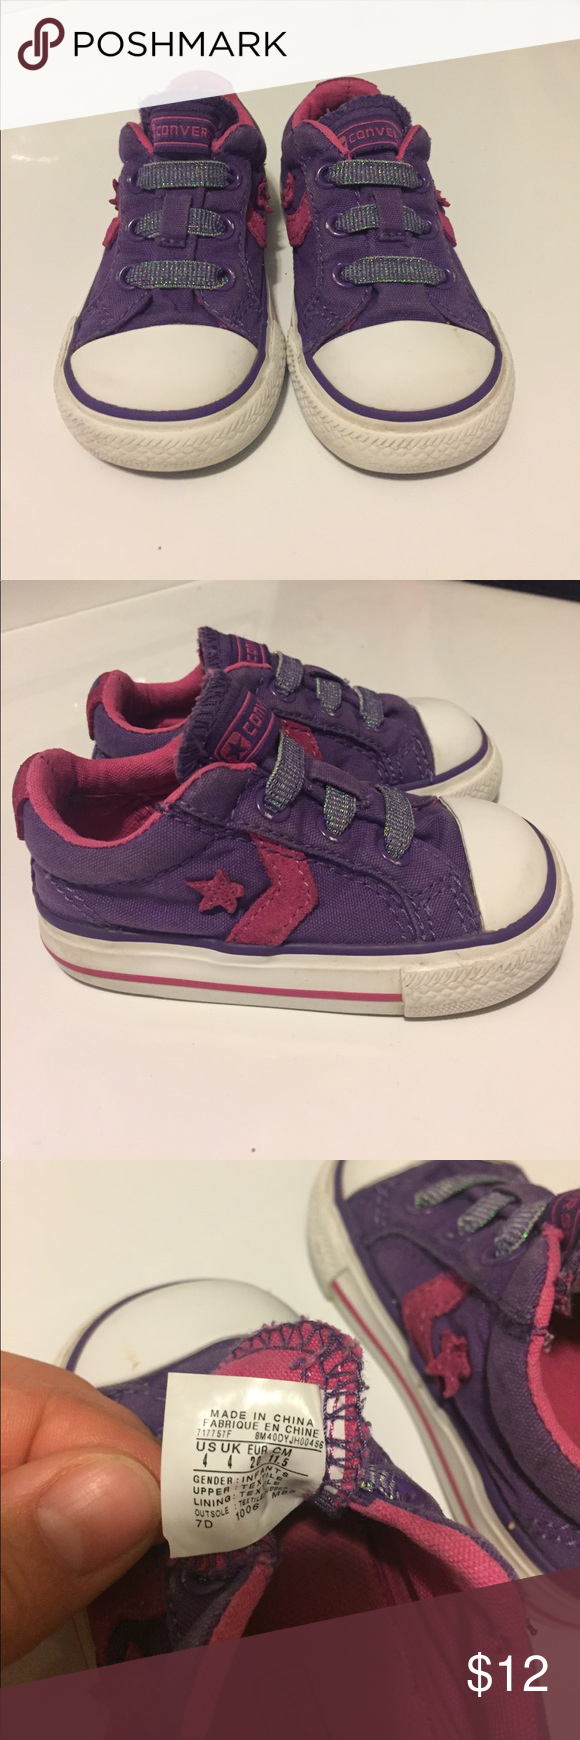 Size 4 baby girl Converse Shoes